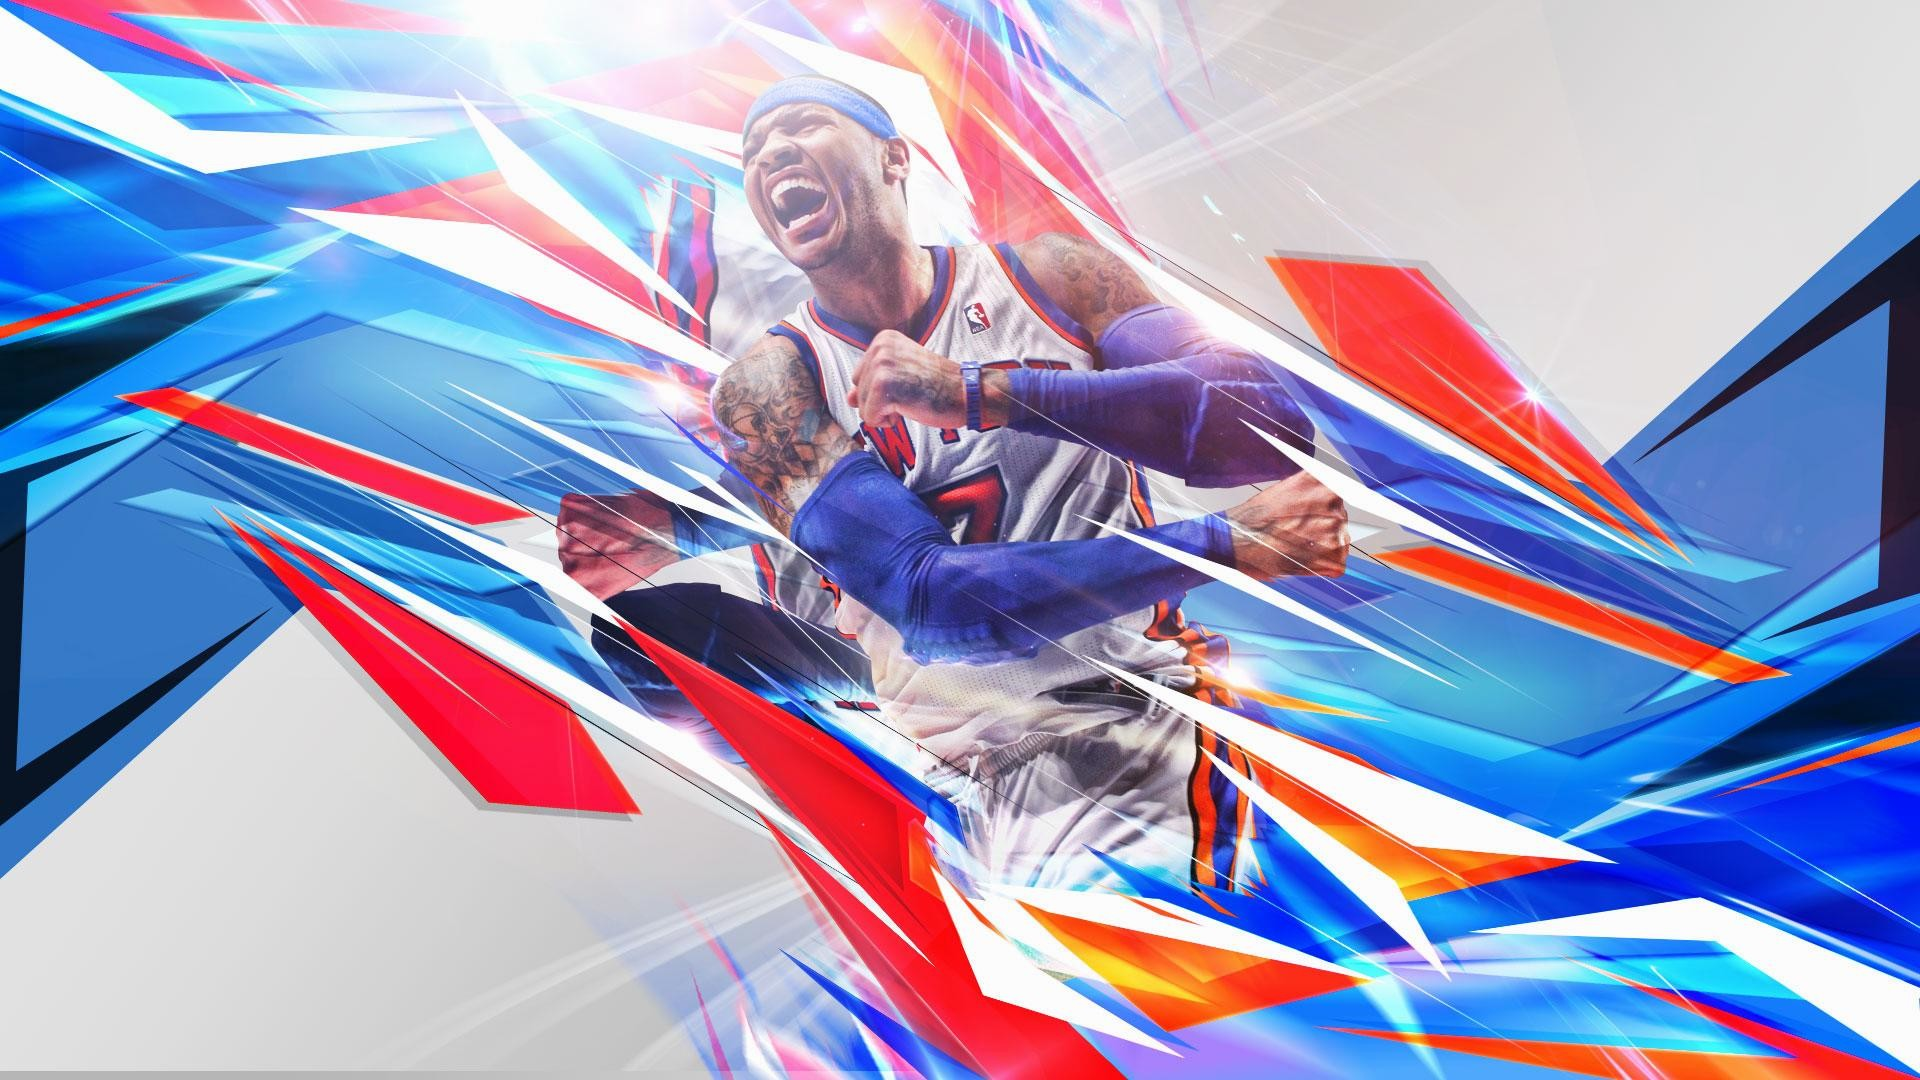 1920x1080 Carmelo-Anthony-New-York-Knicks-HD-Images